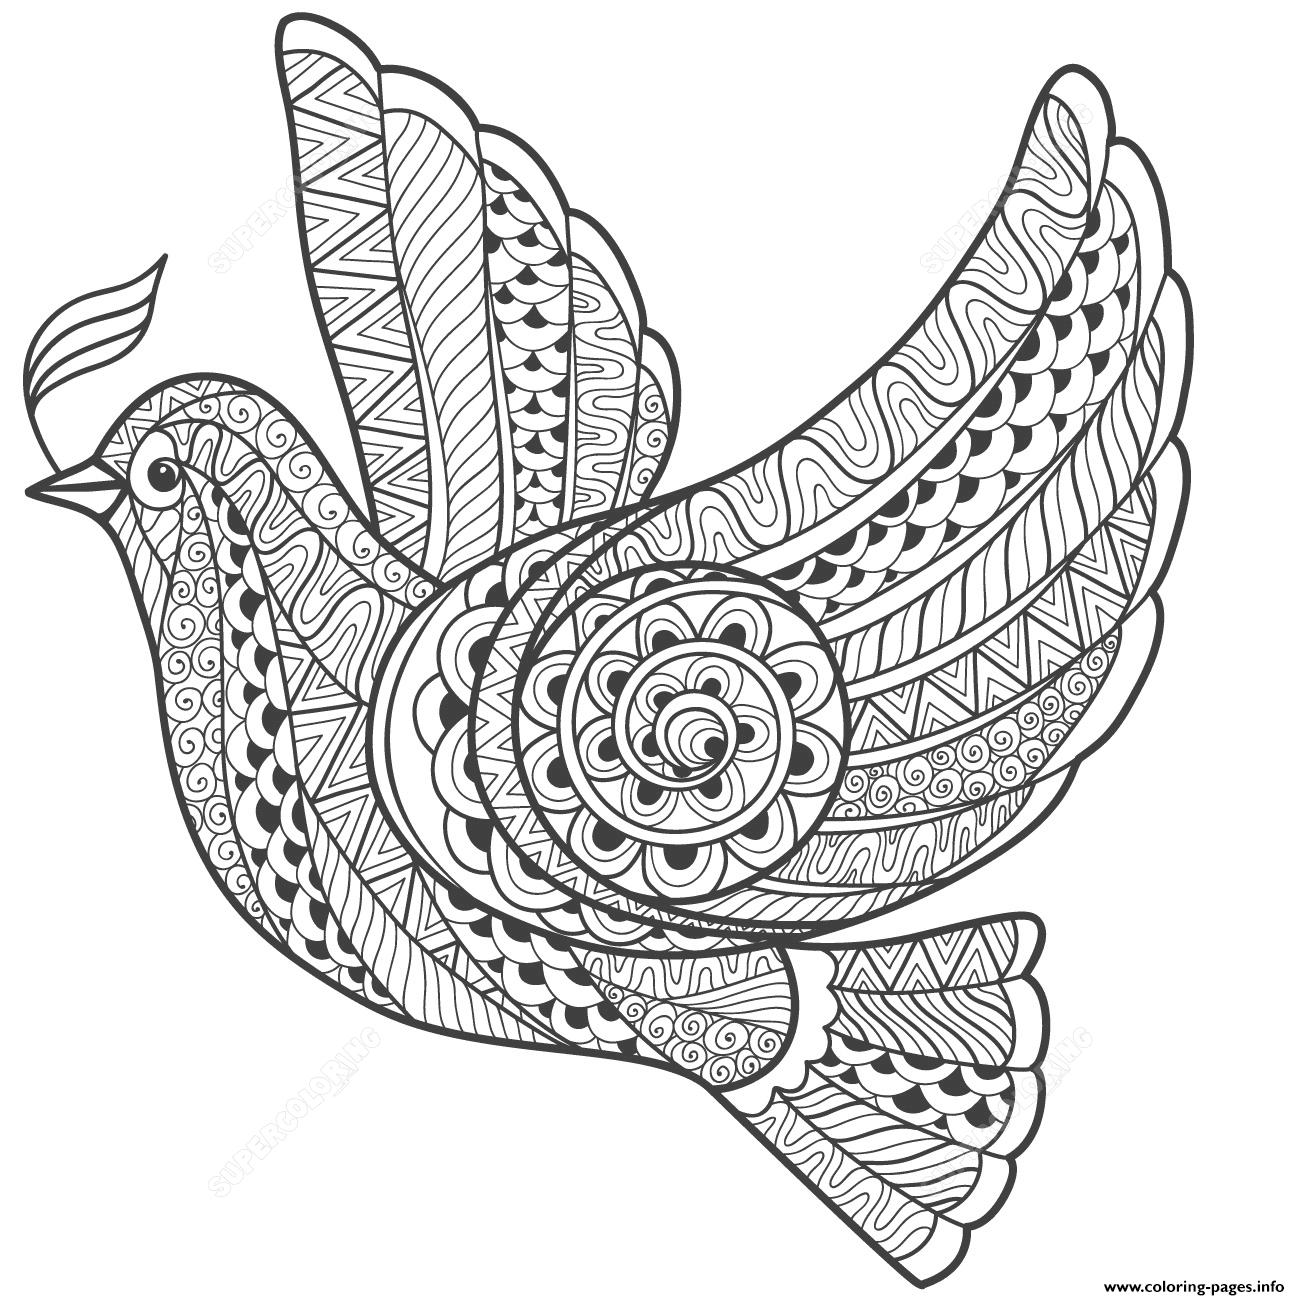 peace dove coloring page images of doves of peace coloring home coloring page peace dove